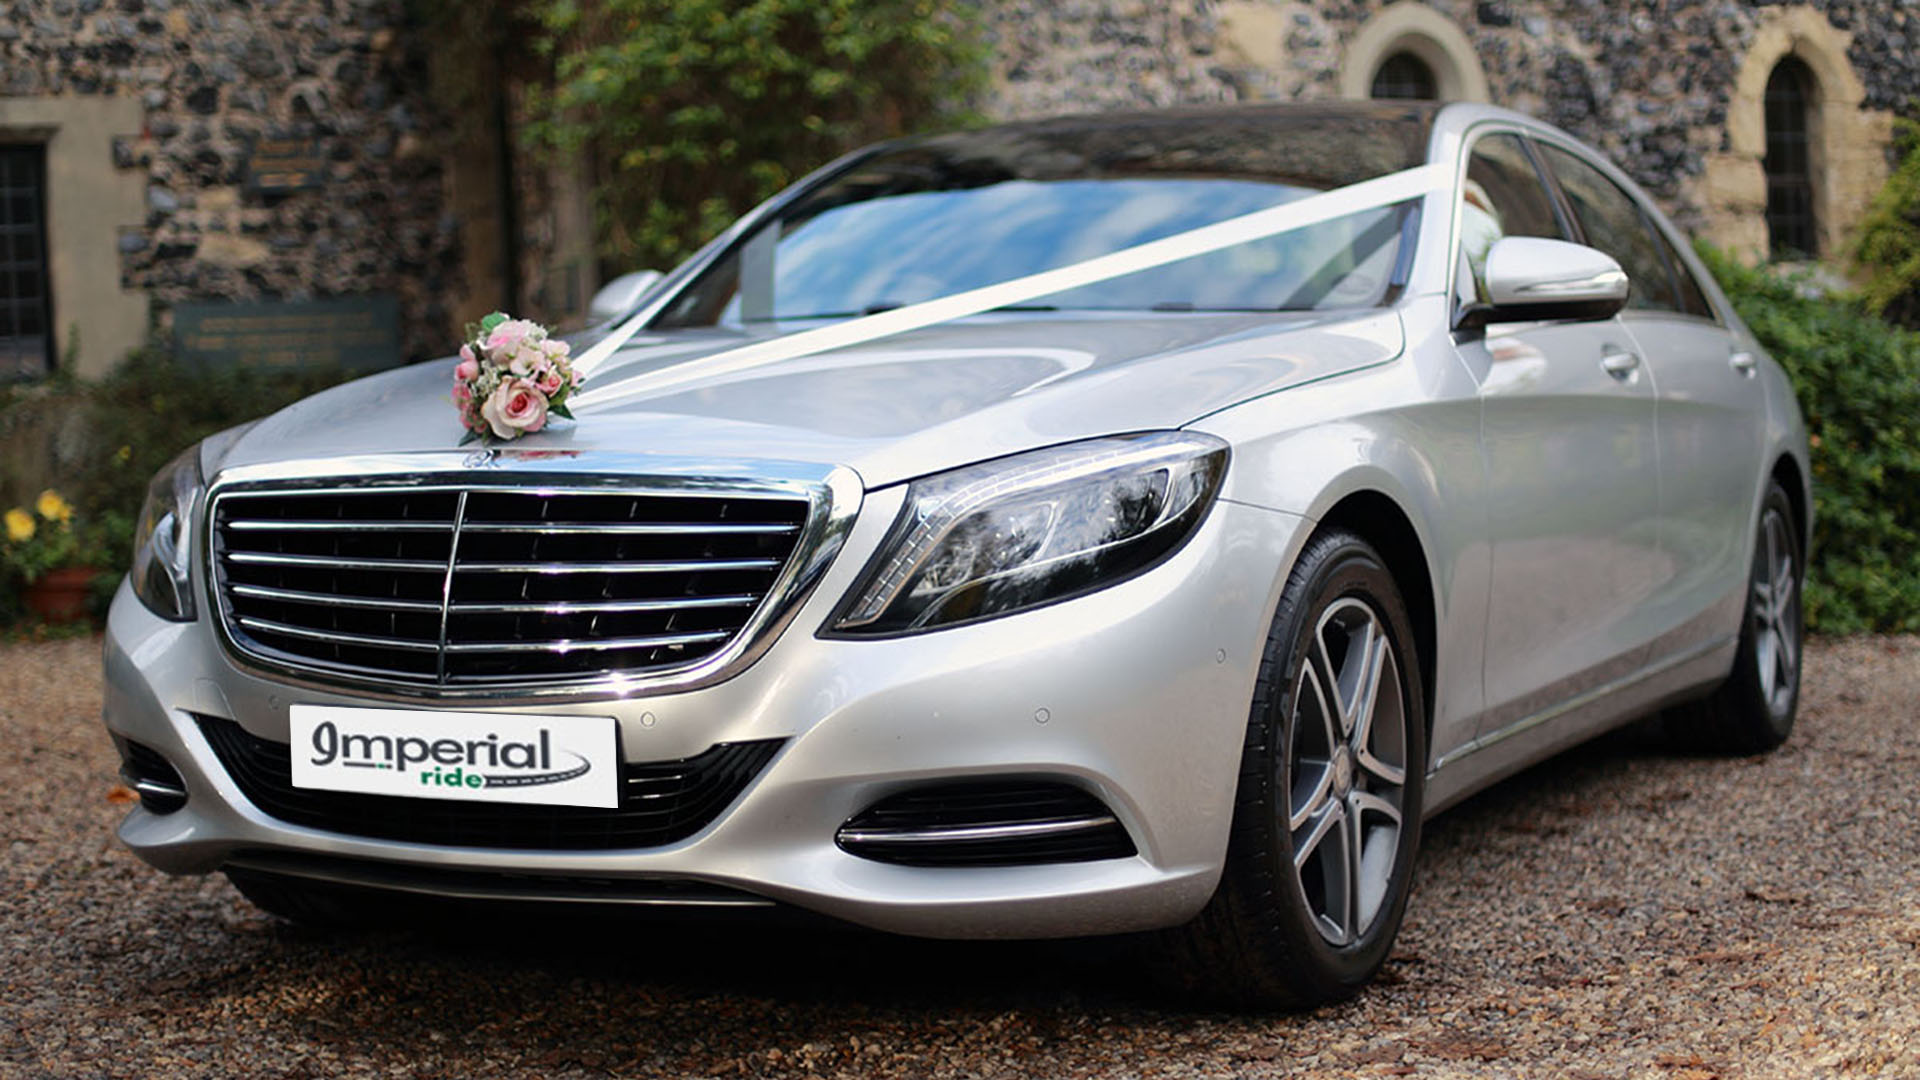 s-class-wedding-hire-in-greenwich